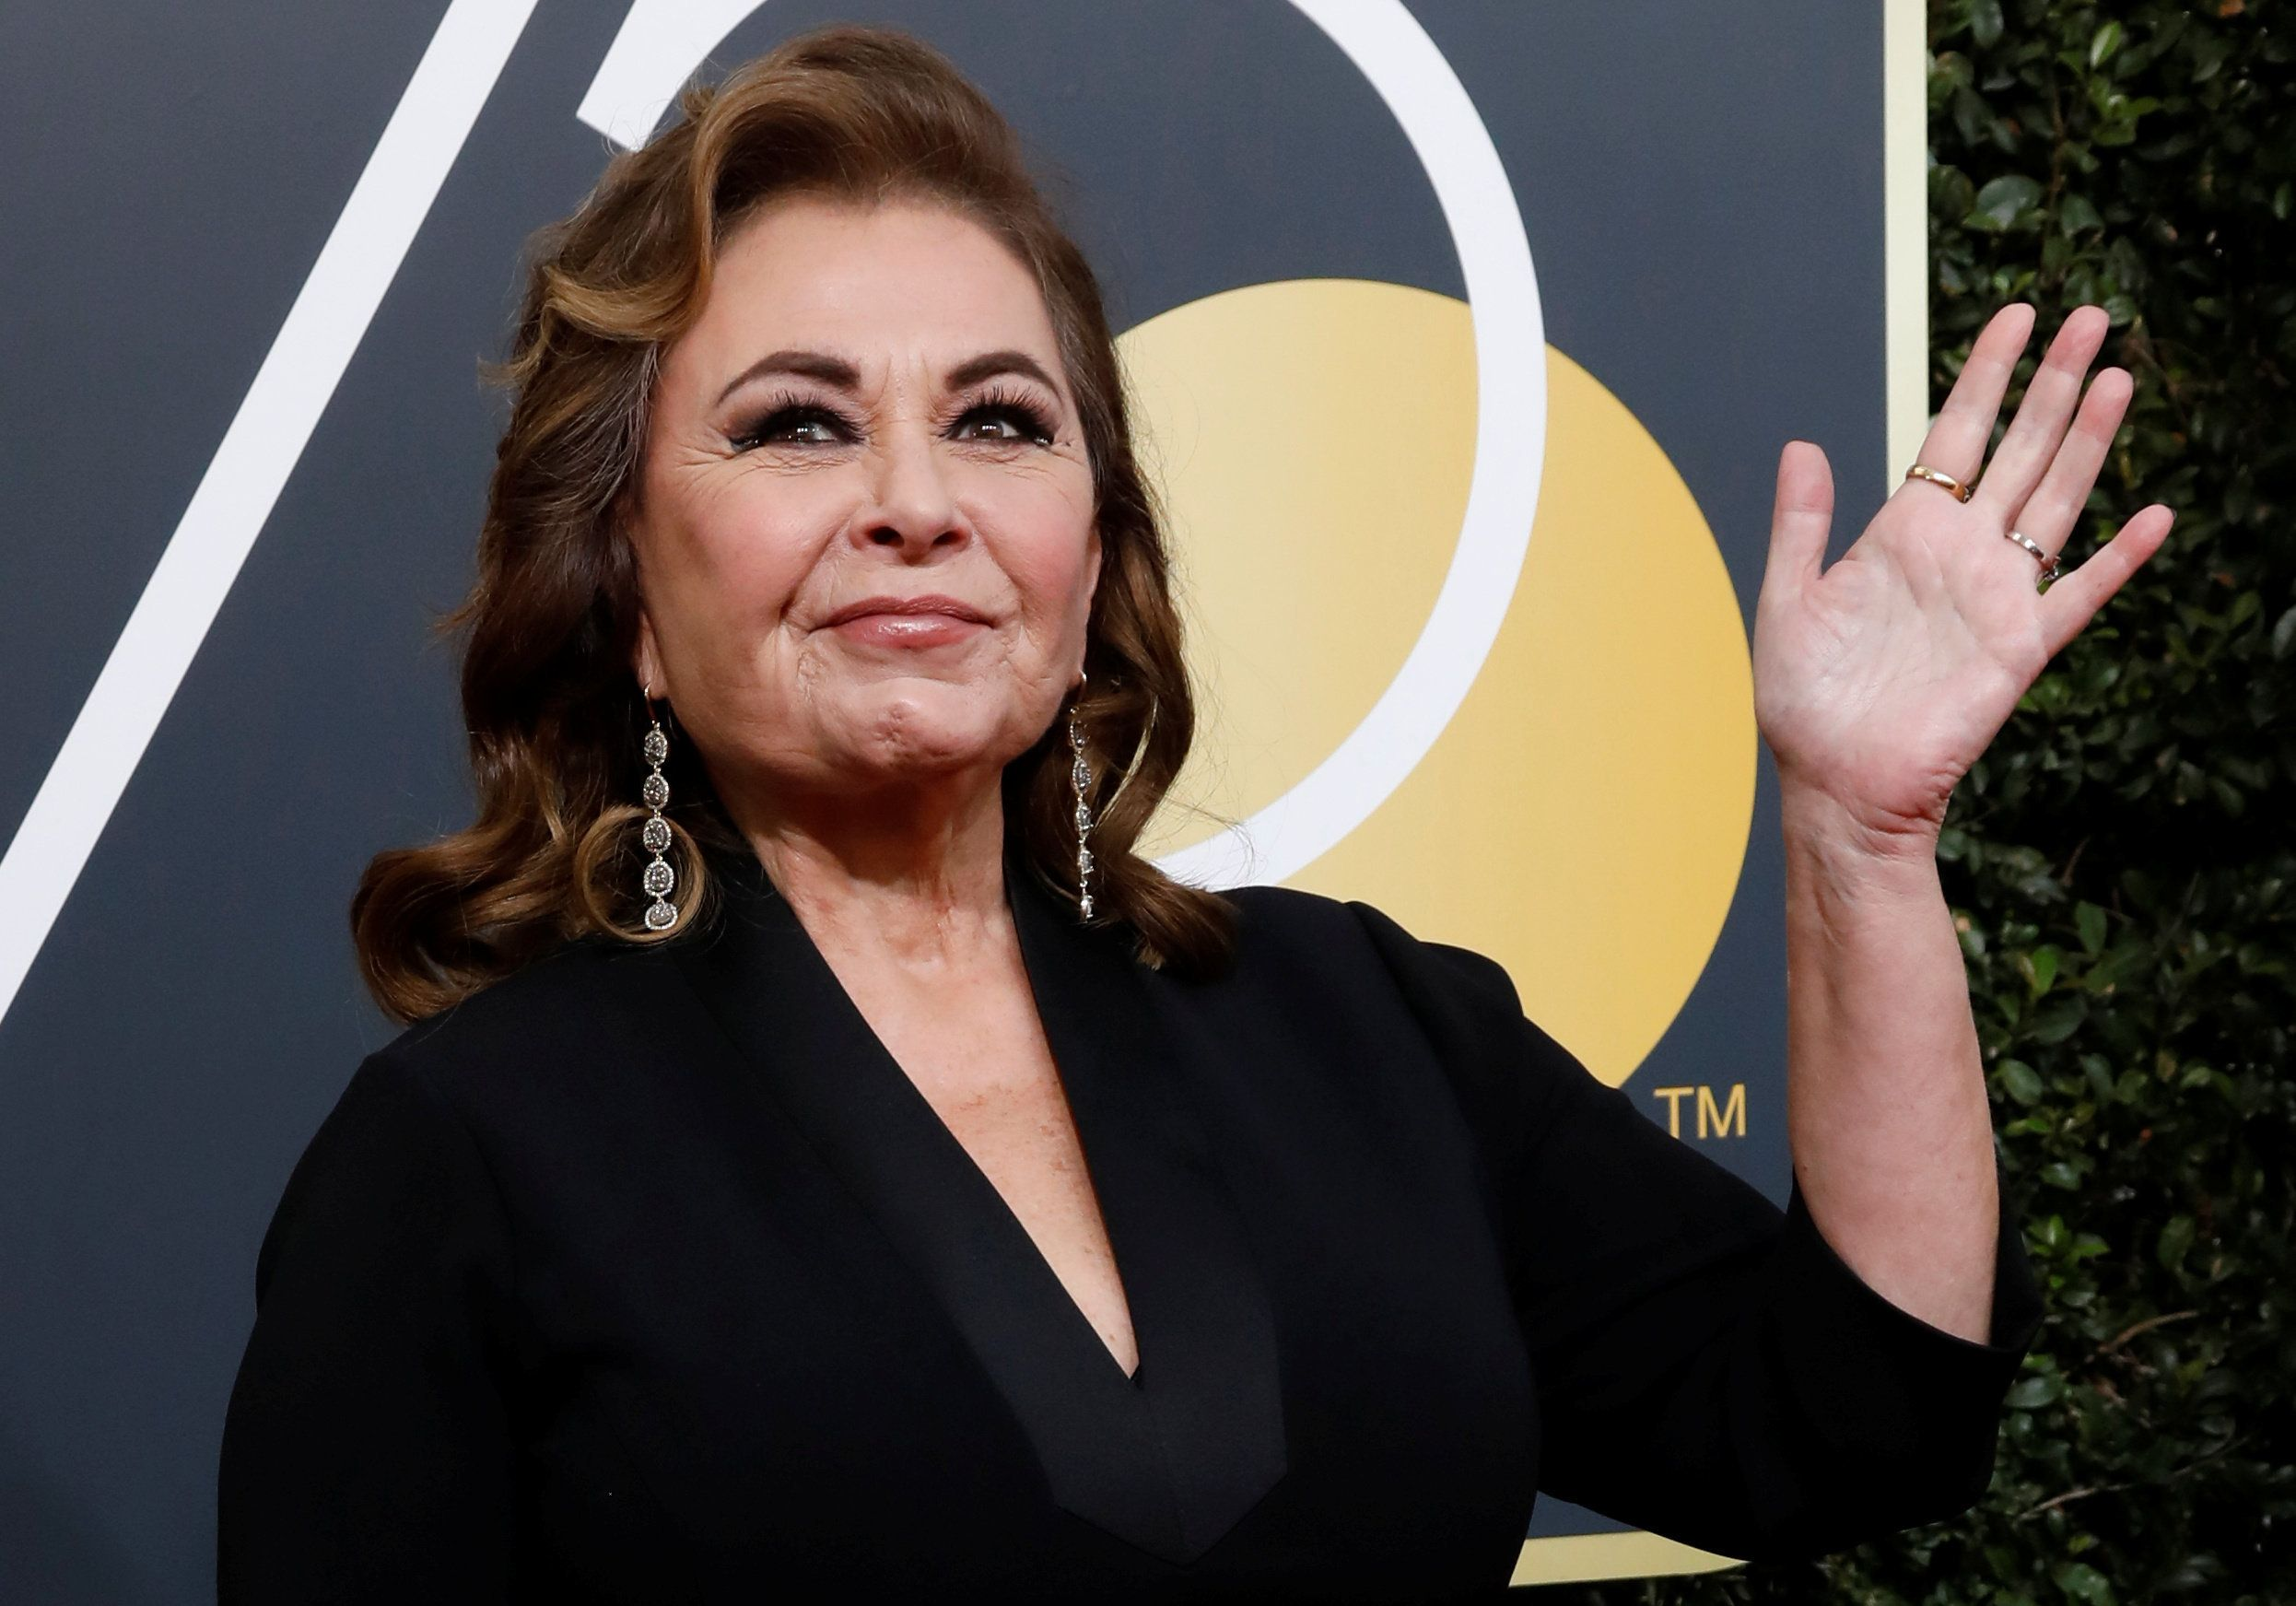 Roseanne Barr Sorry for Calling George Soros a Nazi